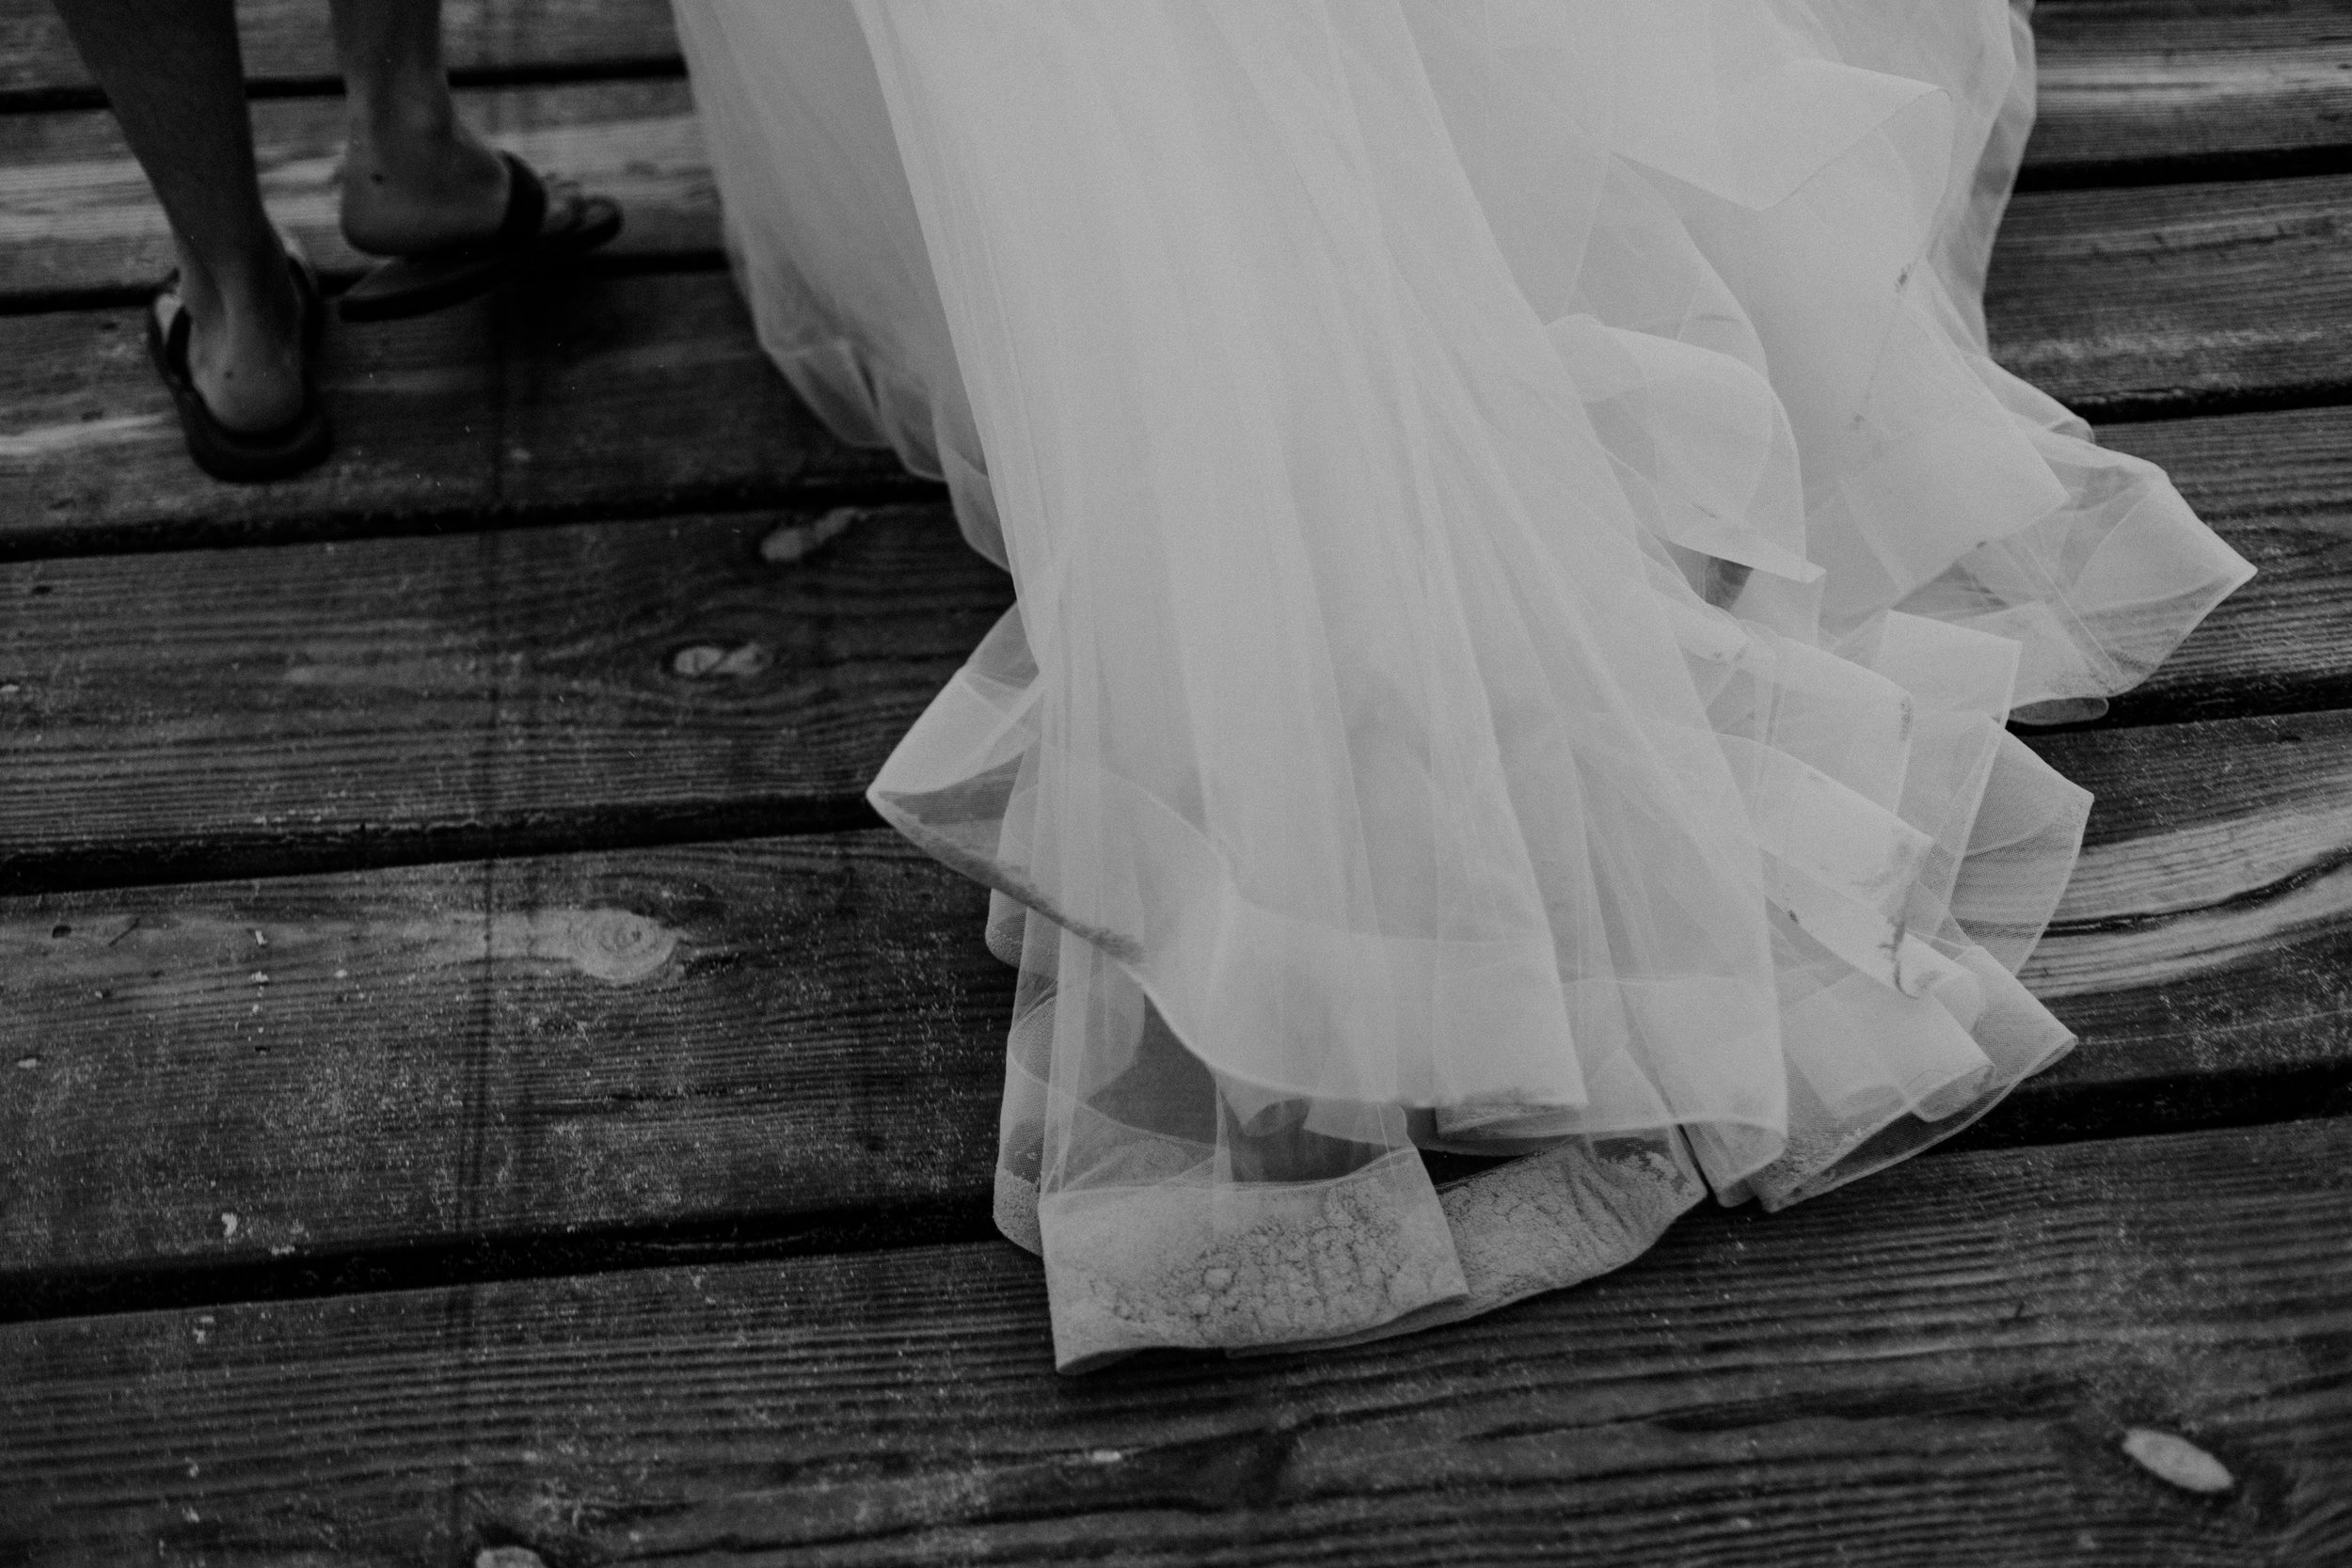 san-pescador-belize-wedding-christinemariephoto-j-k-123.jpg